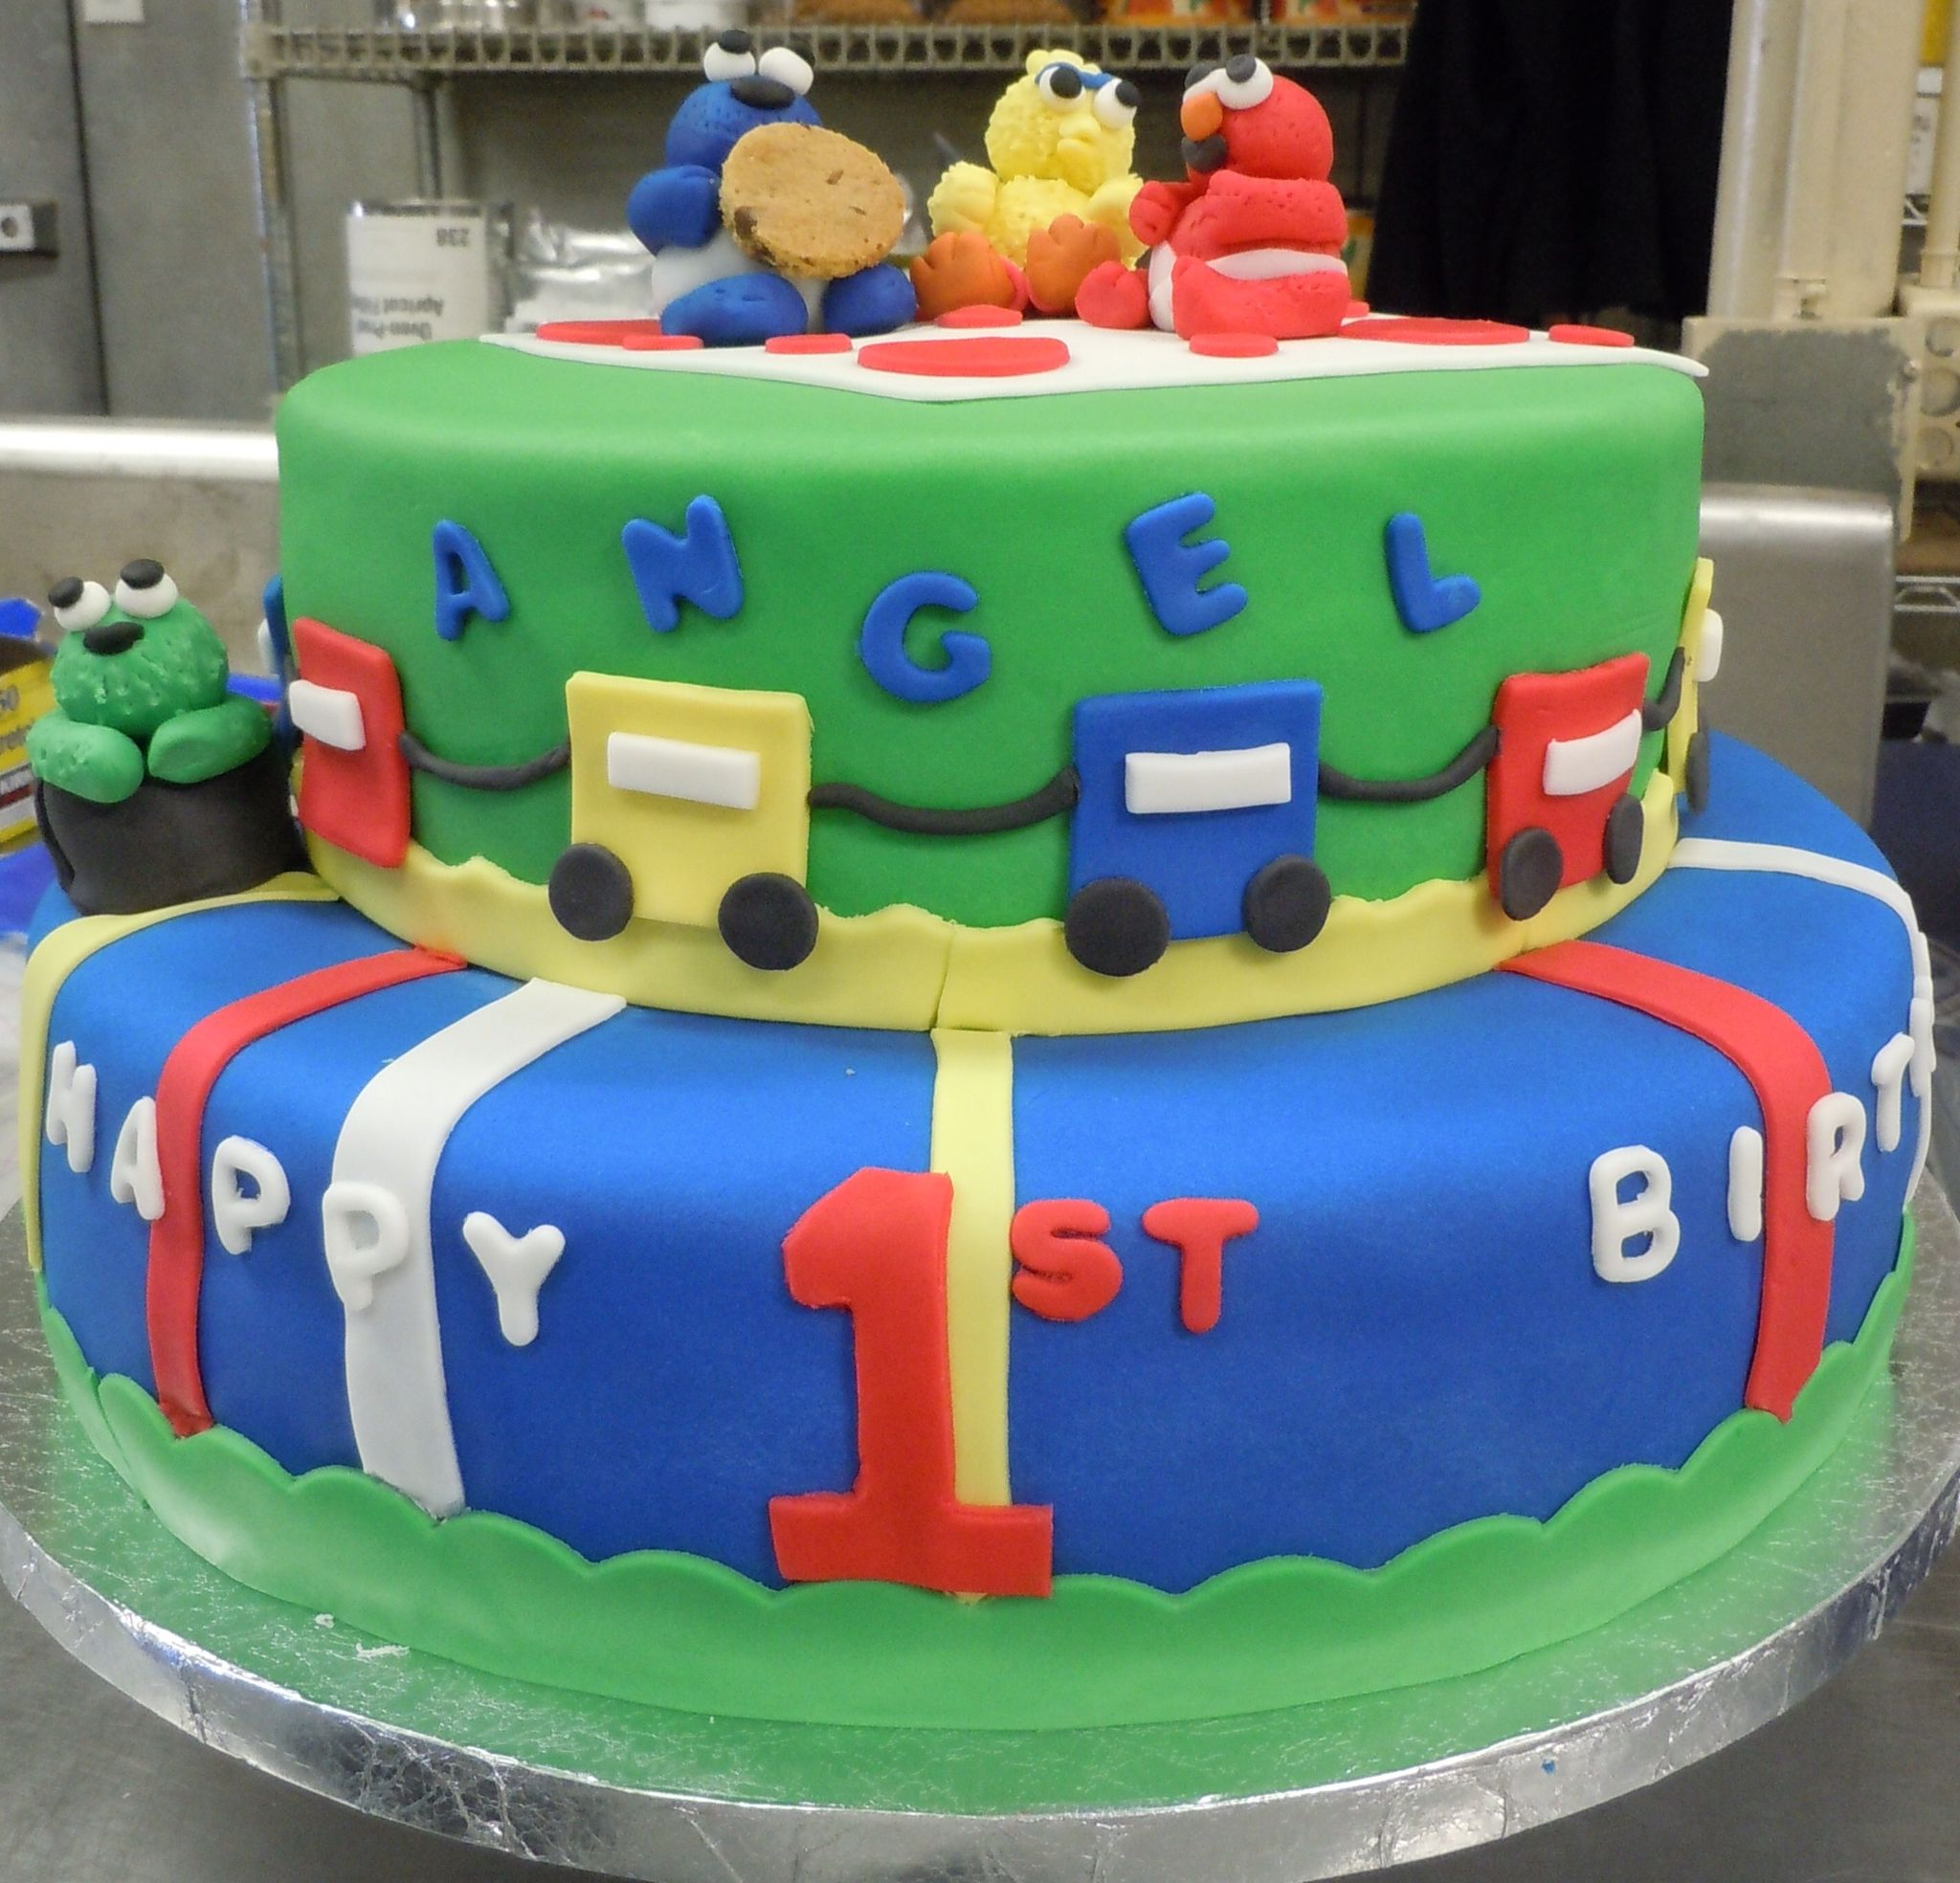 Fondant covered Sesame Street cake with fondant figures of Cookie